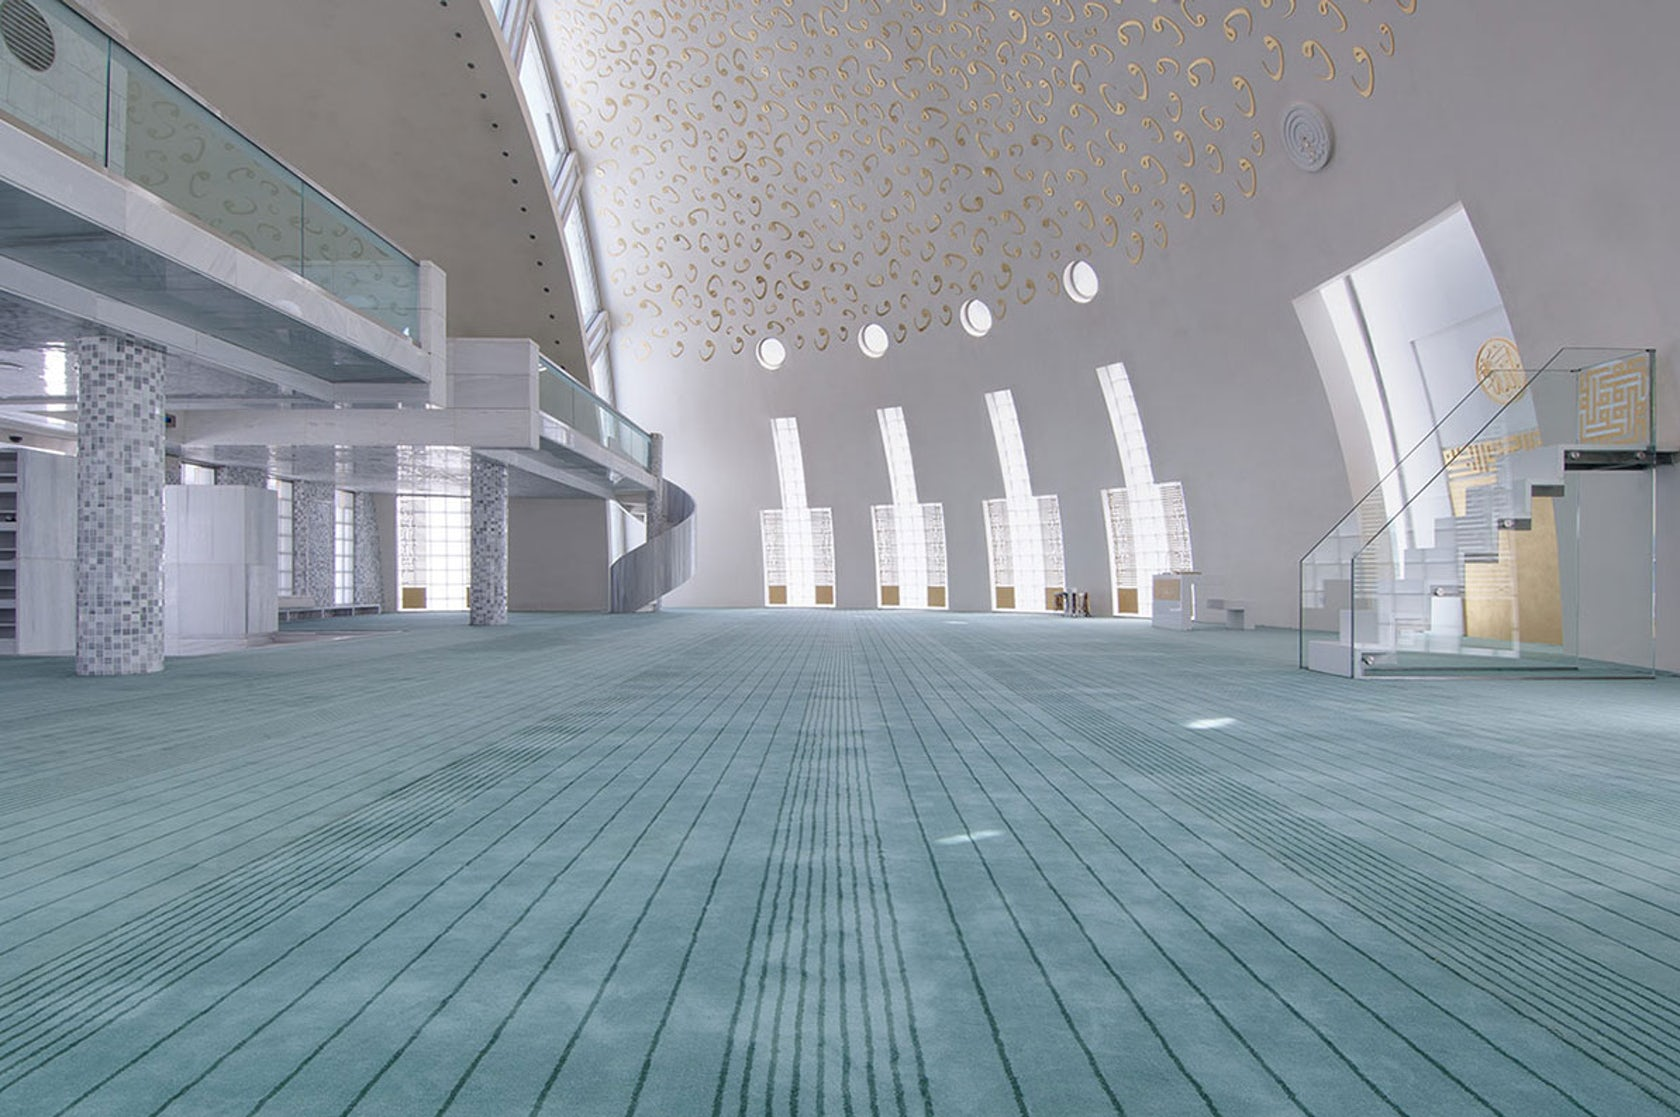 Yesilvadi Mosque on Architizer